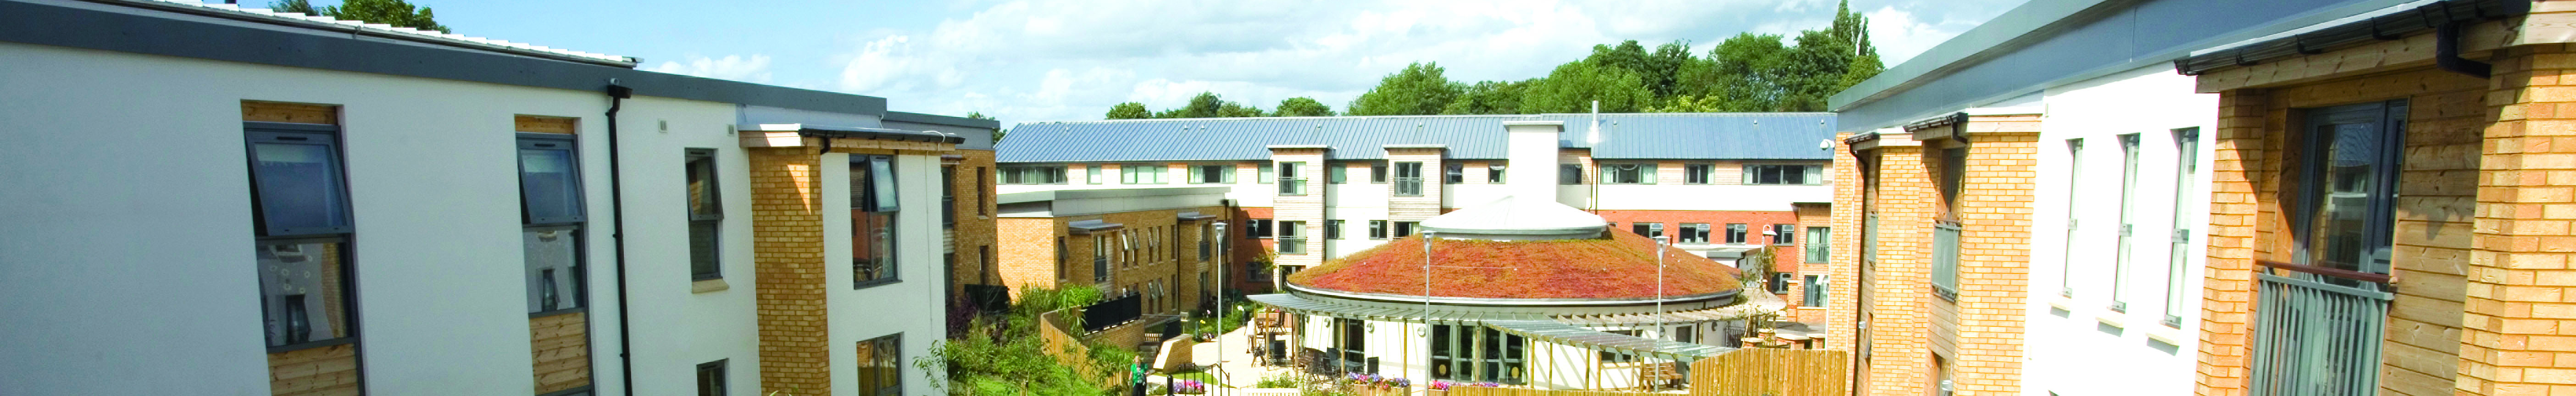 Pickmere Court Extra Care in Crewe